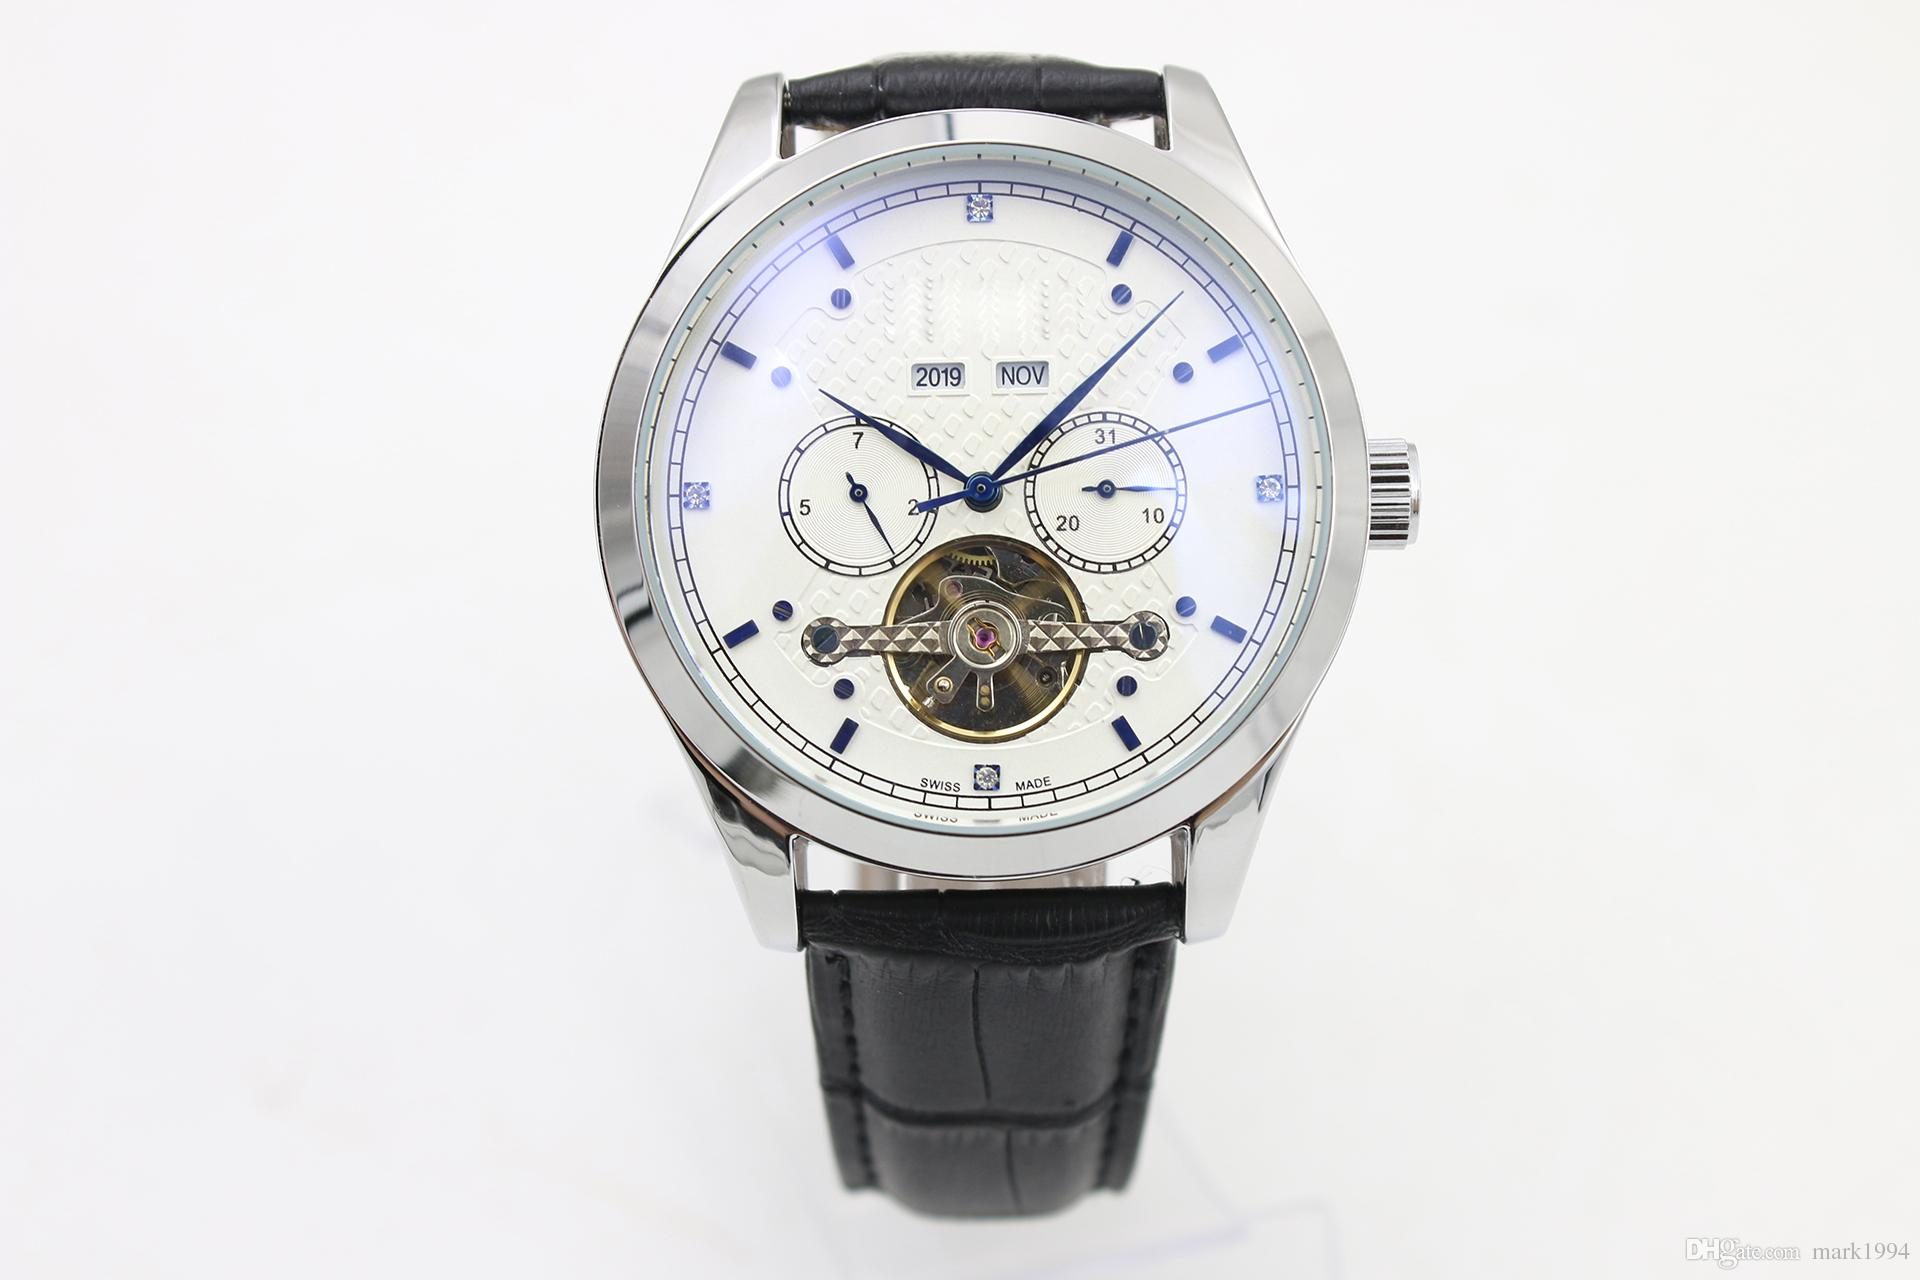 watchshop chronograph lorus to made beautiful watches com with blue quality and well good is a case but display mens the more design great very bracelet gents polished watch shine no